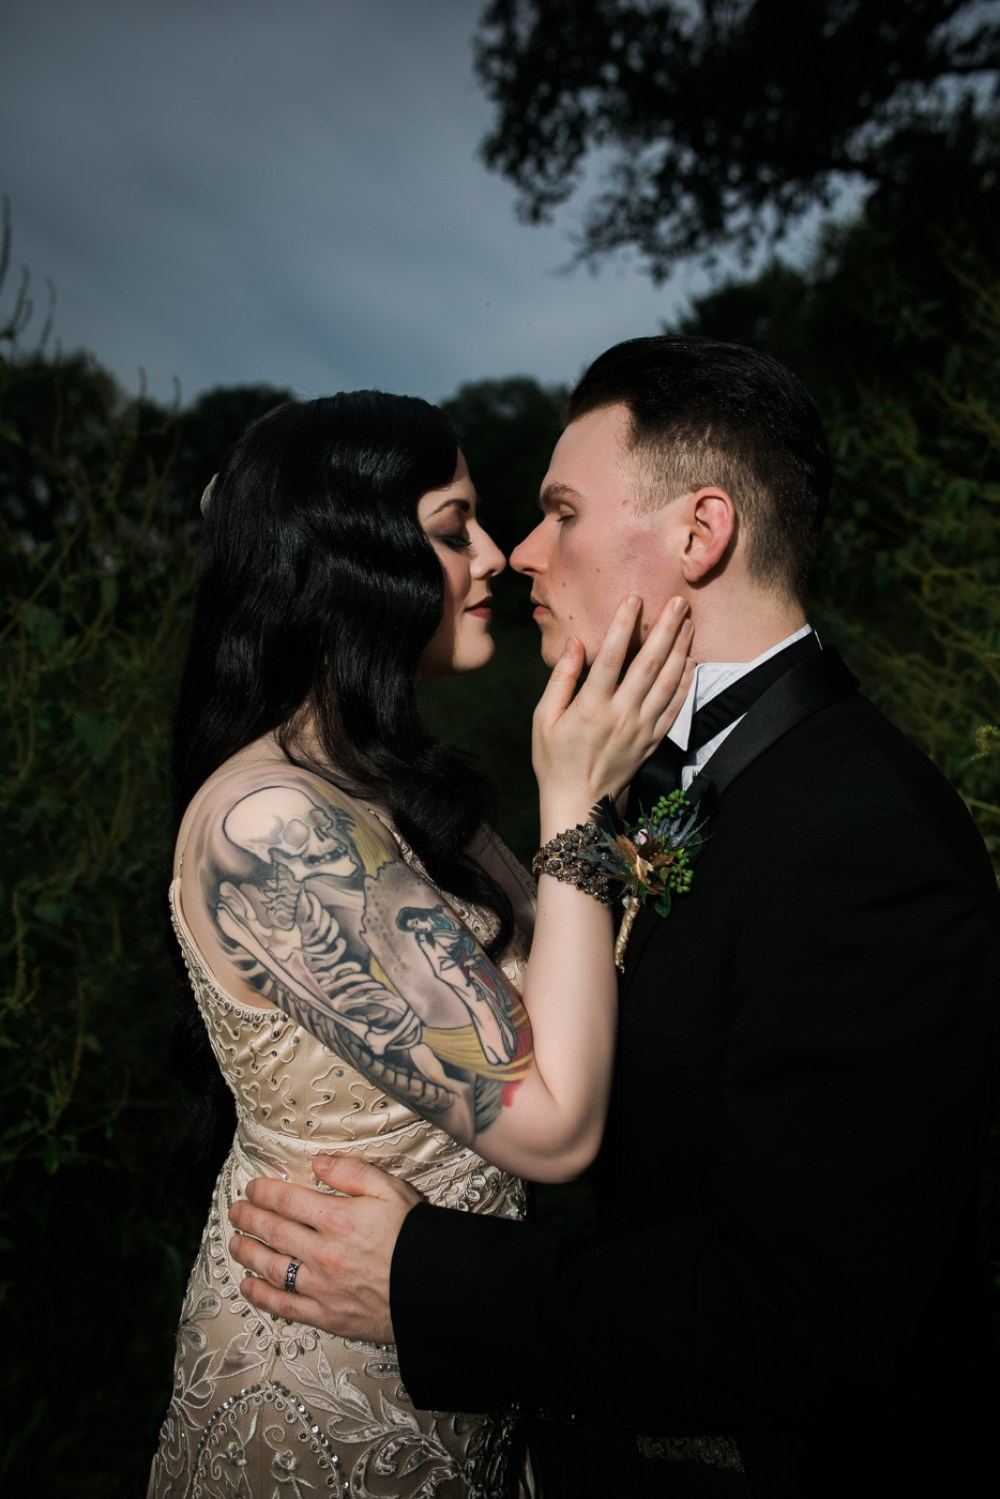 and-how-imaging-gothic-inspired-styled-shoot-gothic-wedding-1920s-theme-wedding-1920s-inspired-styled-shoot-halloween-styled-shoot-gothic-inspired-wedding-39